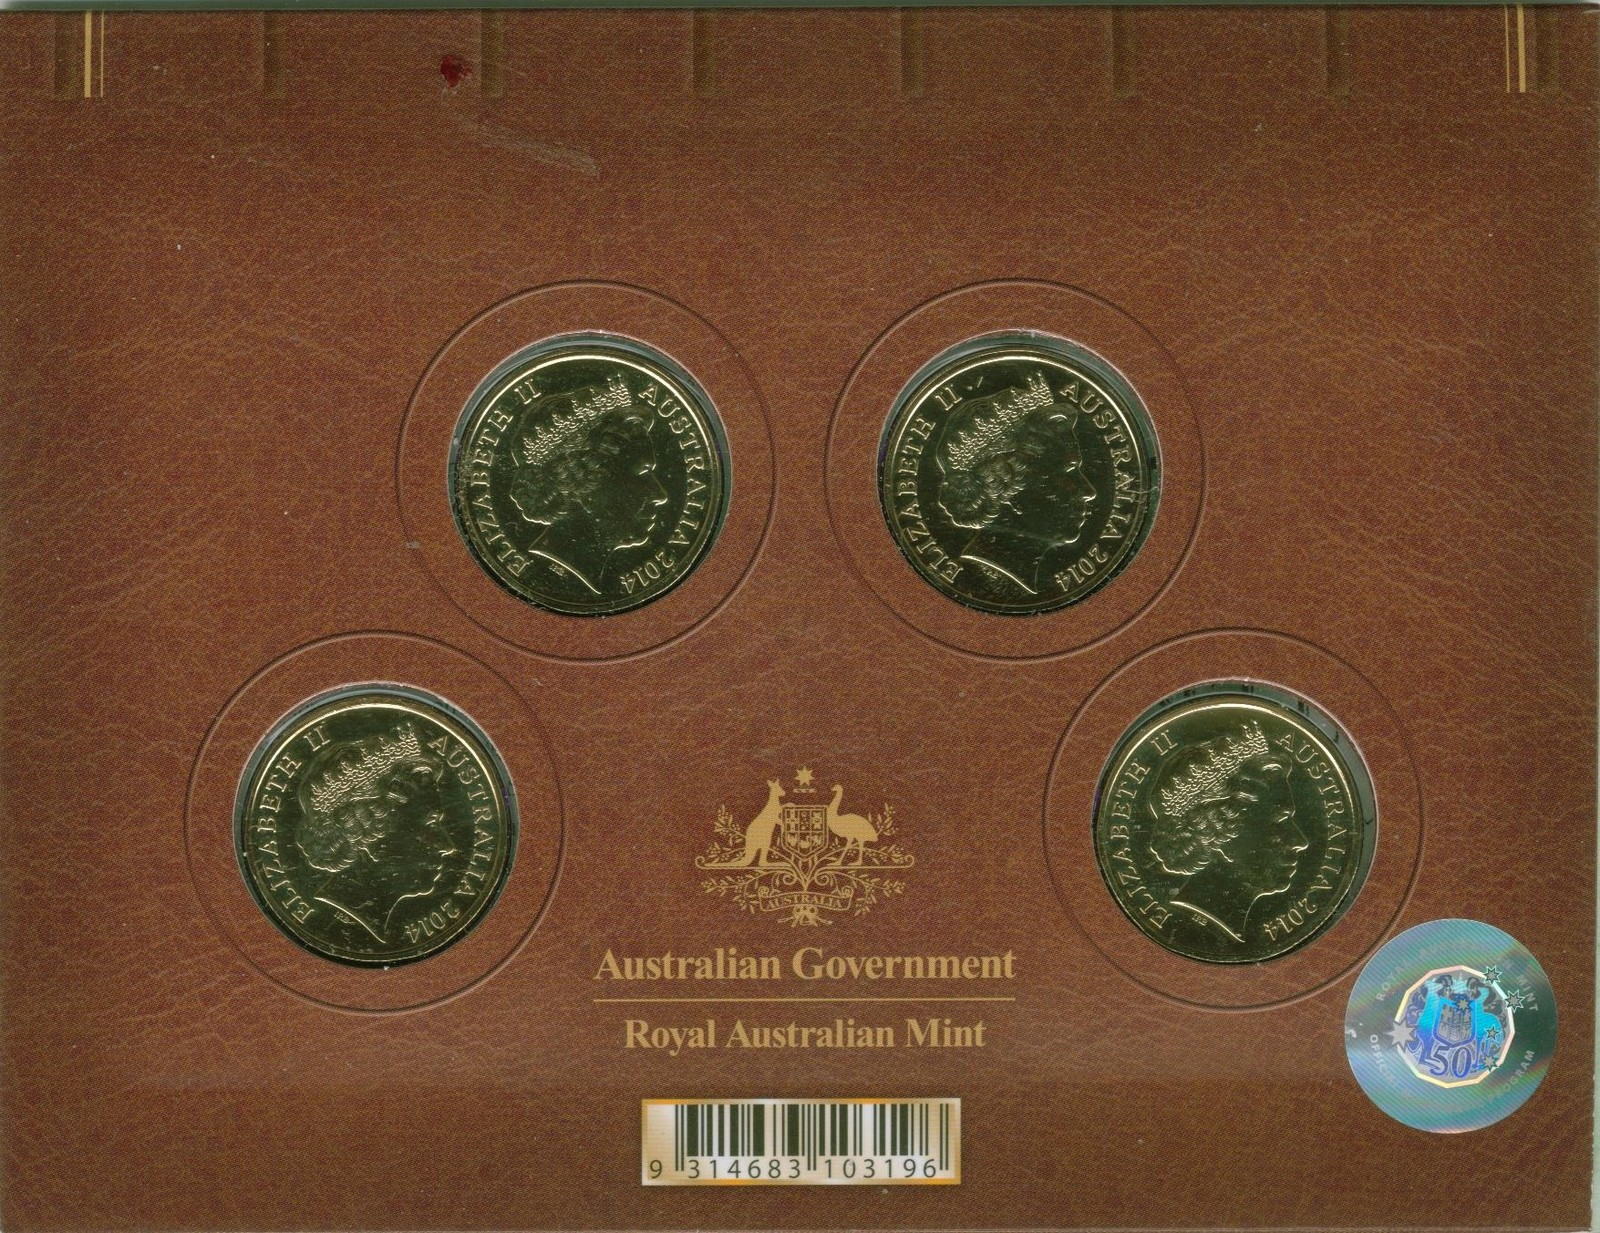 2014 Voyage to Terra Australis 4 Coin Mint & Privy Marks